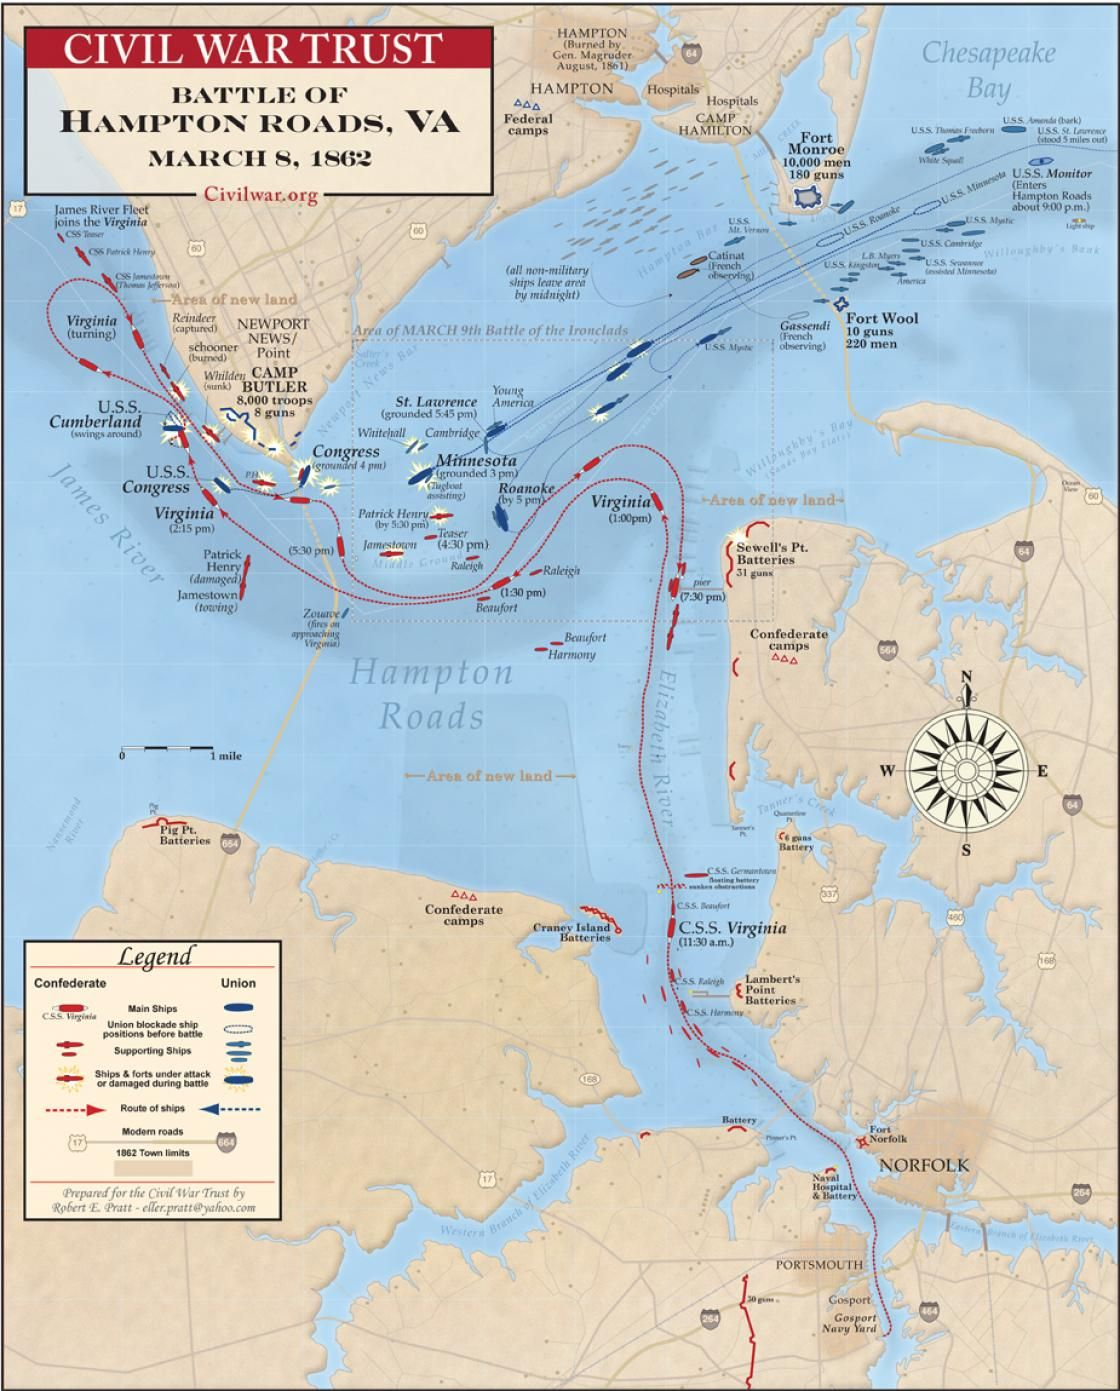 Battle of Hampton Roads or the battle of the ironclads took place in